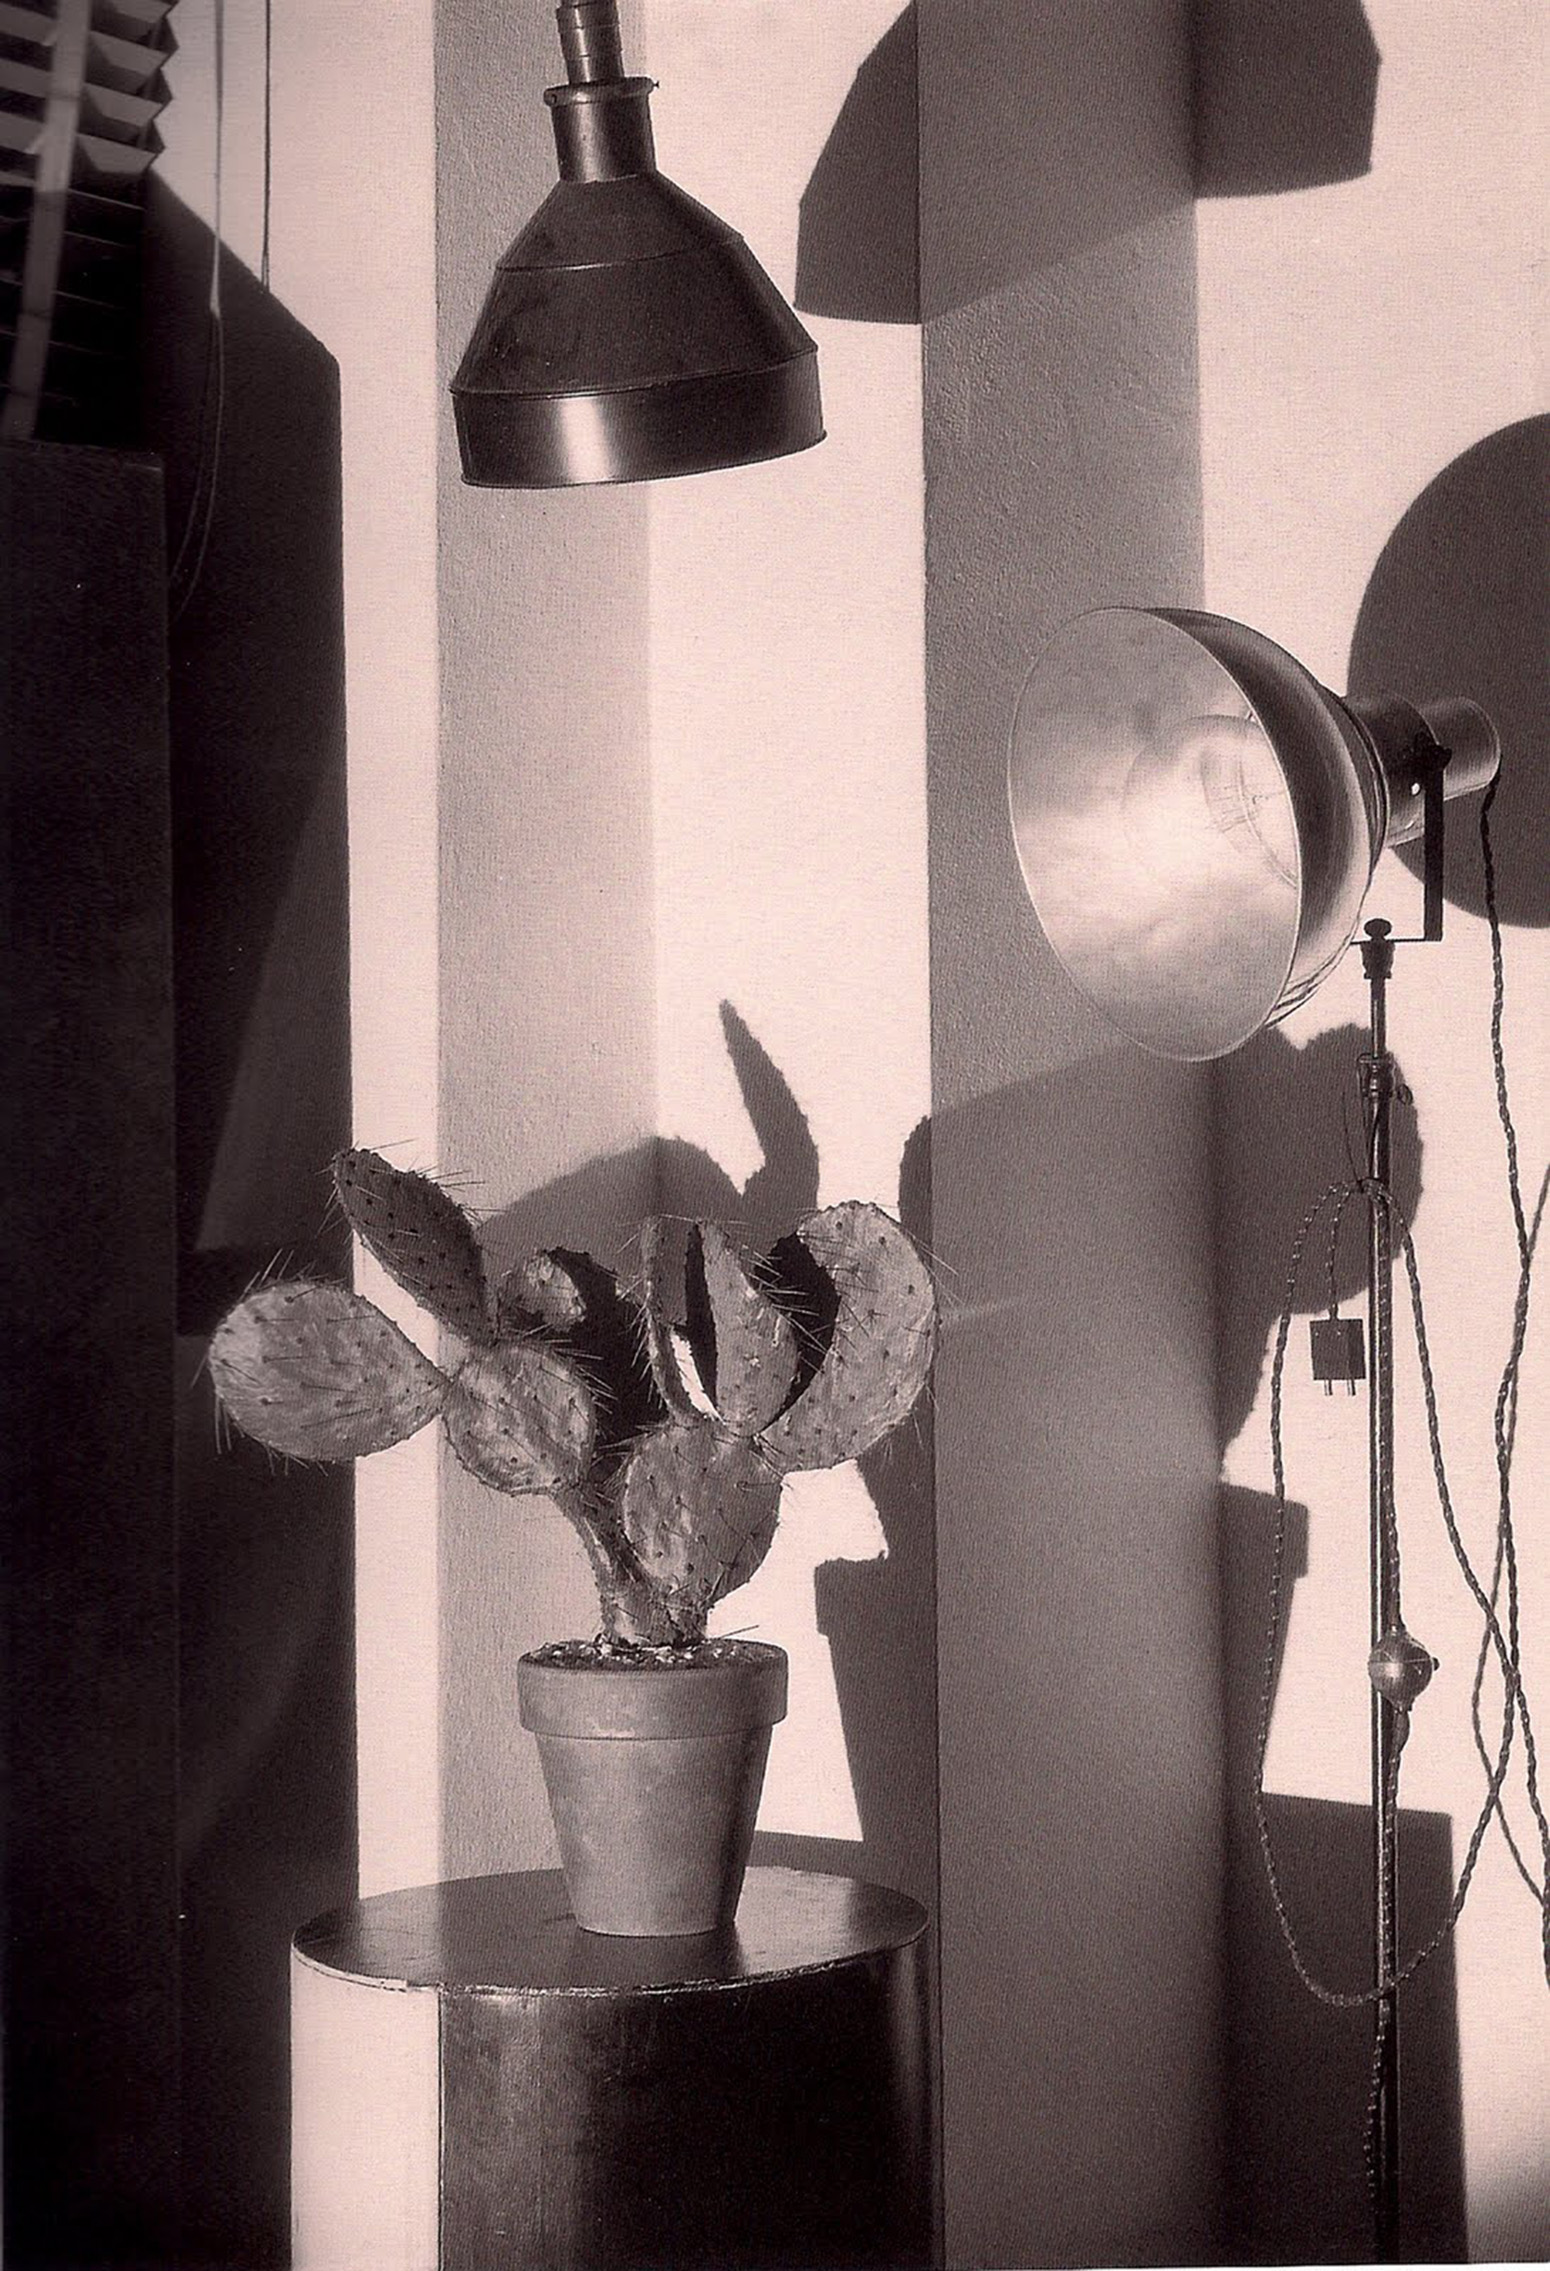 Cactus and the Photographer's Lamp/Charles Sheeler